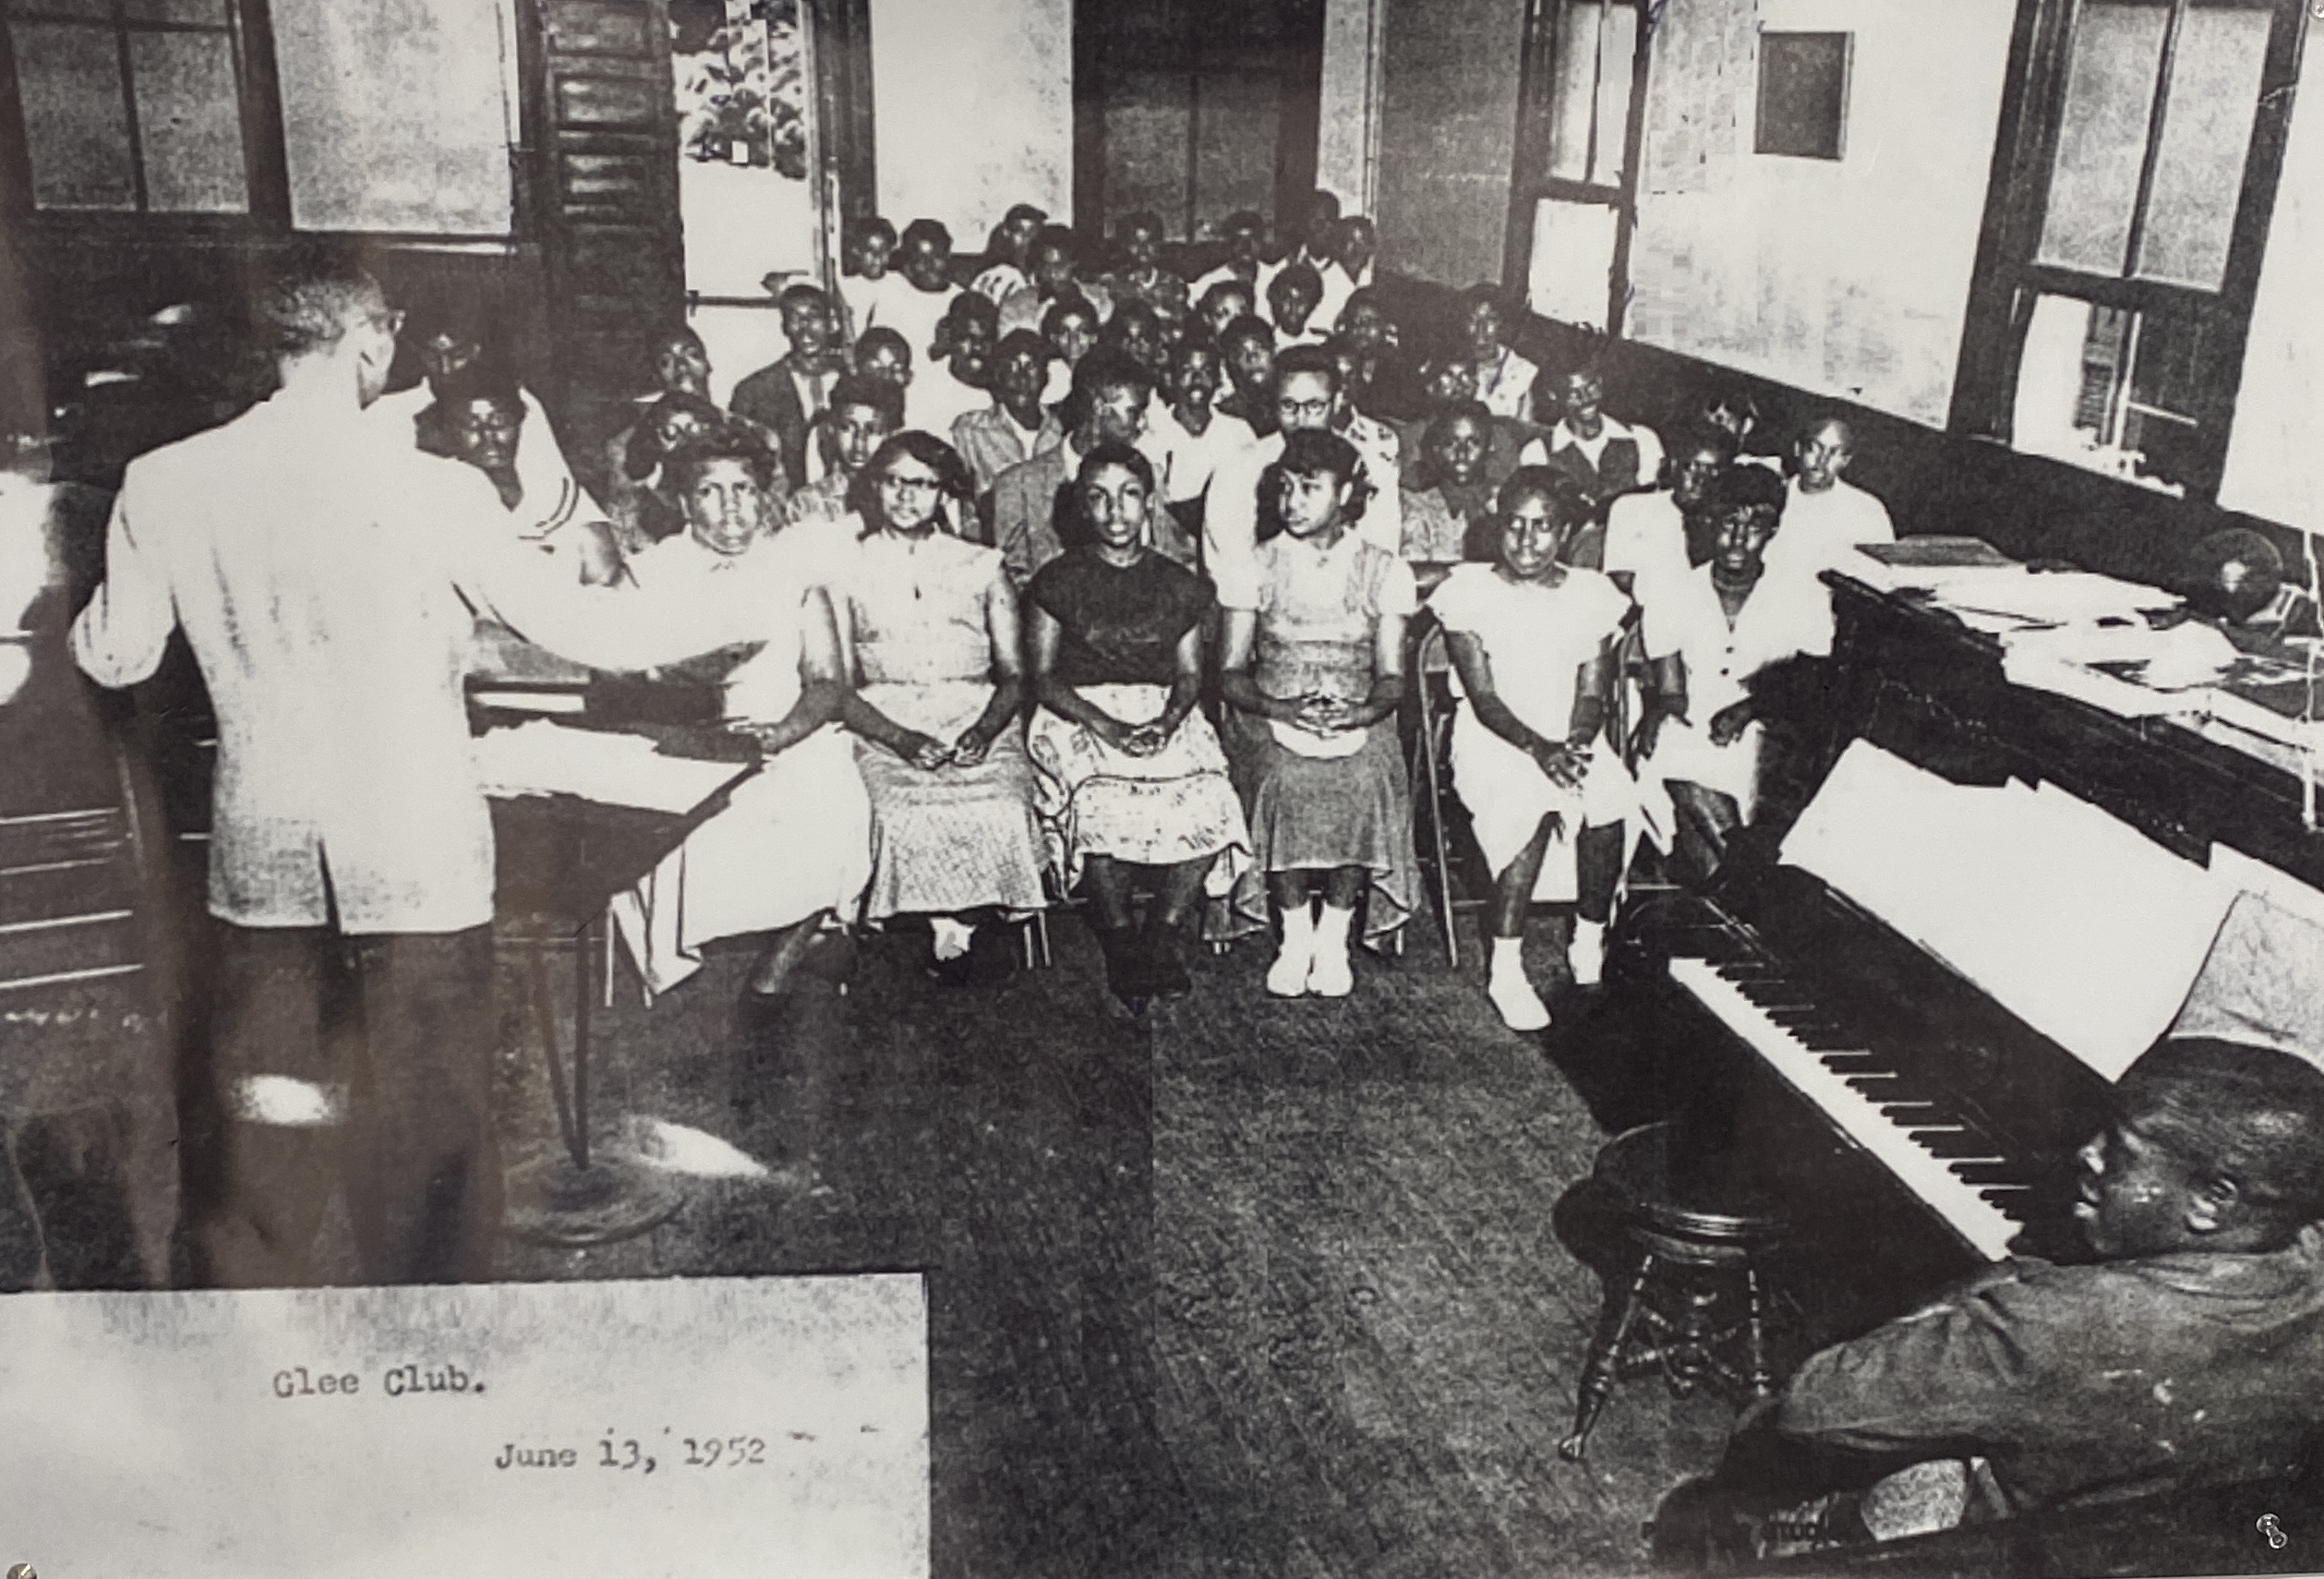 Pictured is a Glee club practice in the nearby church. The church provided extra space for activities when the school began to experience over crowding.